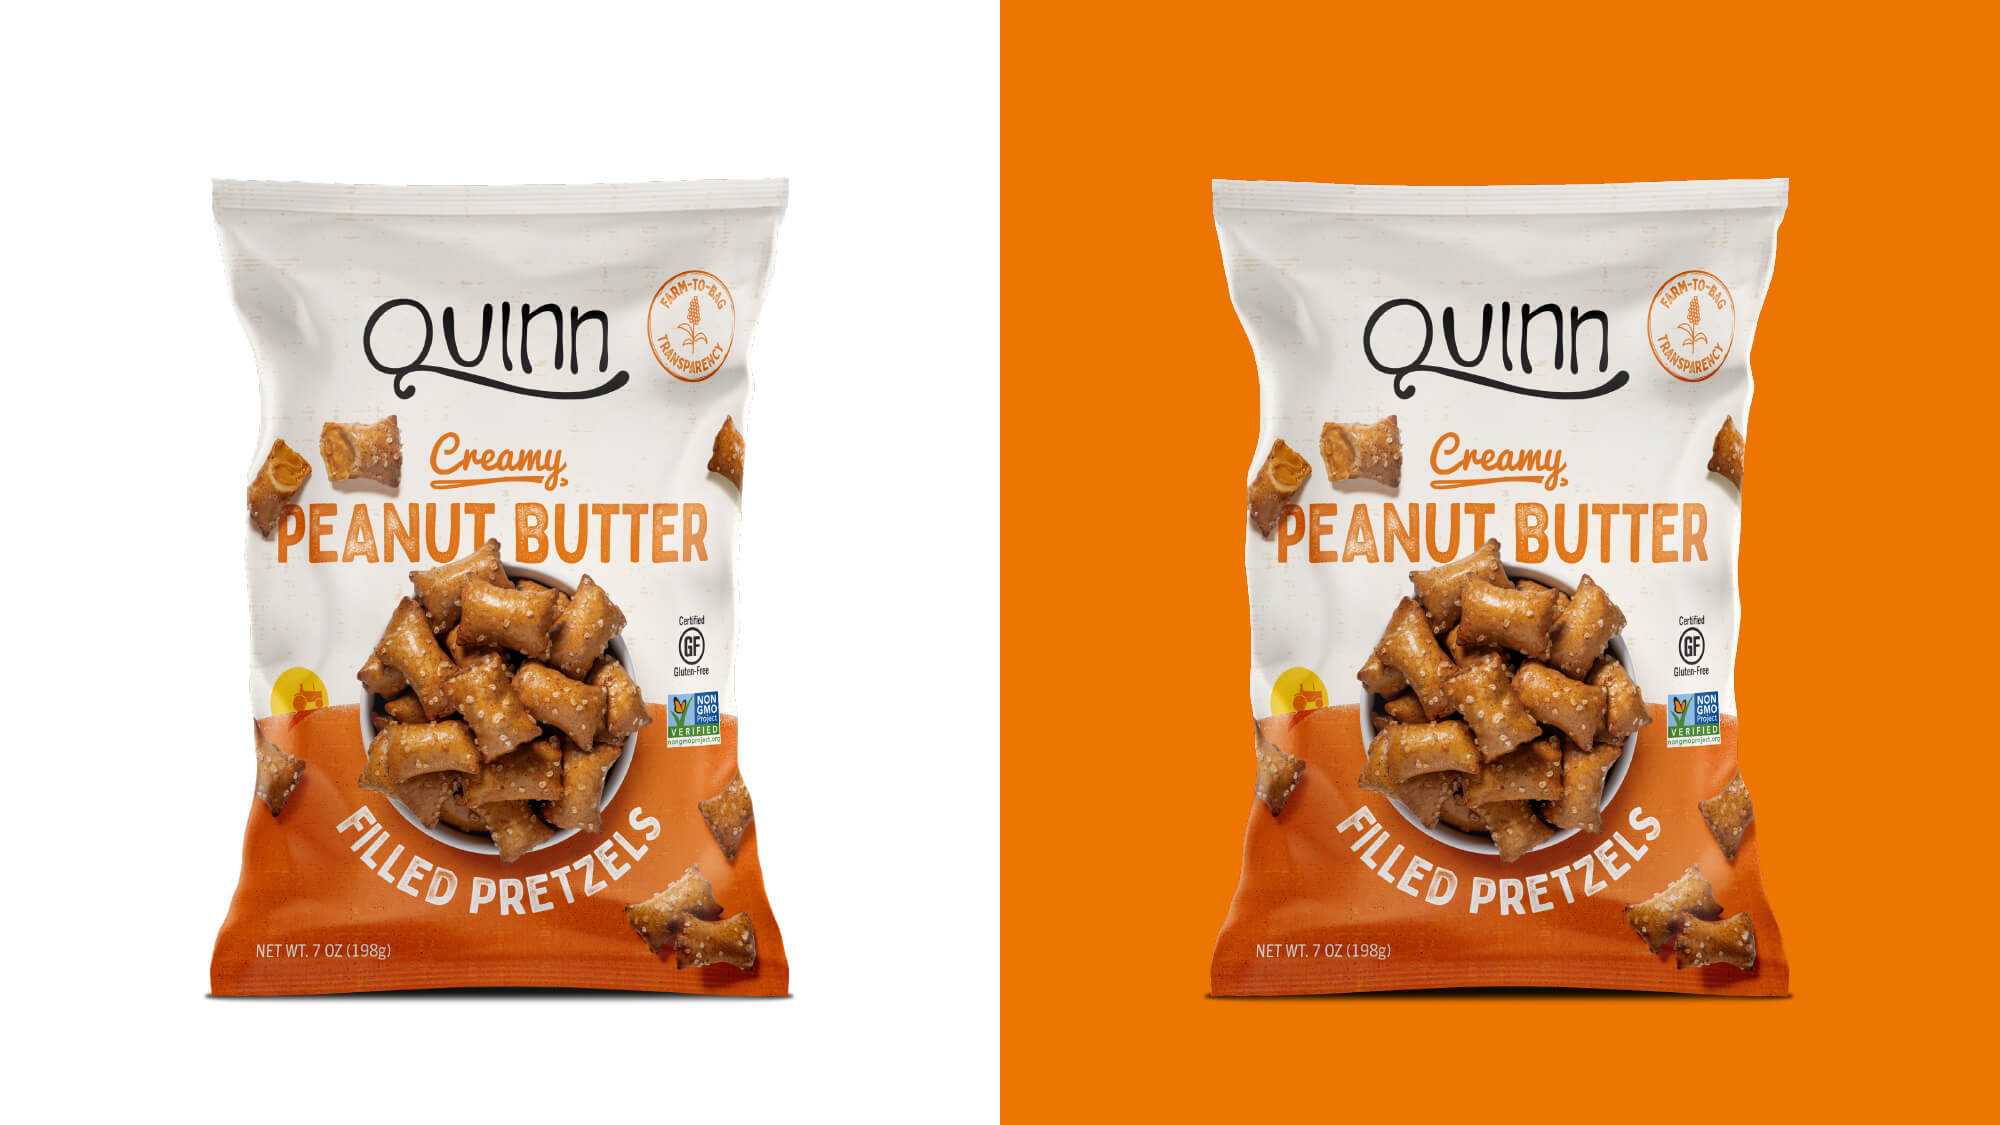 Quinn Pretzels Packaging - Creamy Peanut Butter Filled Pretzels